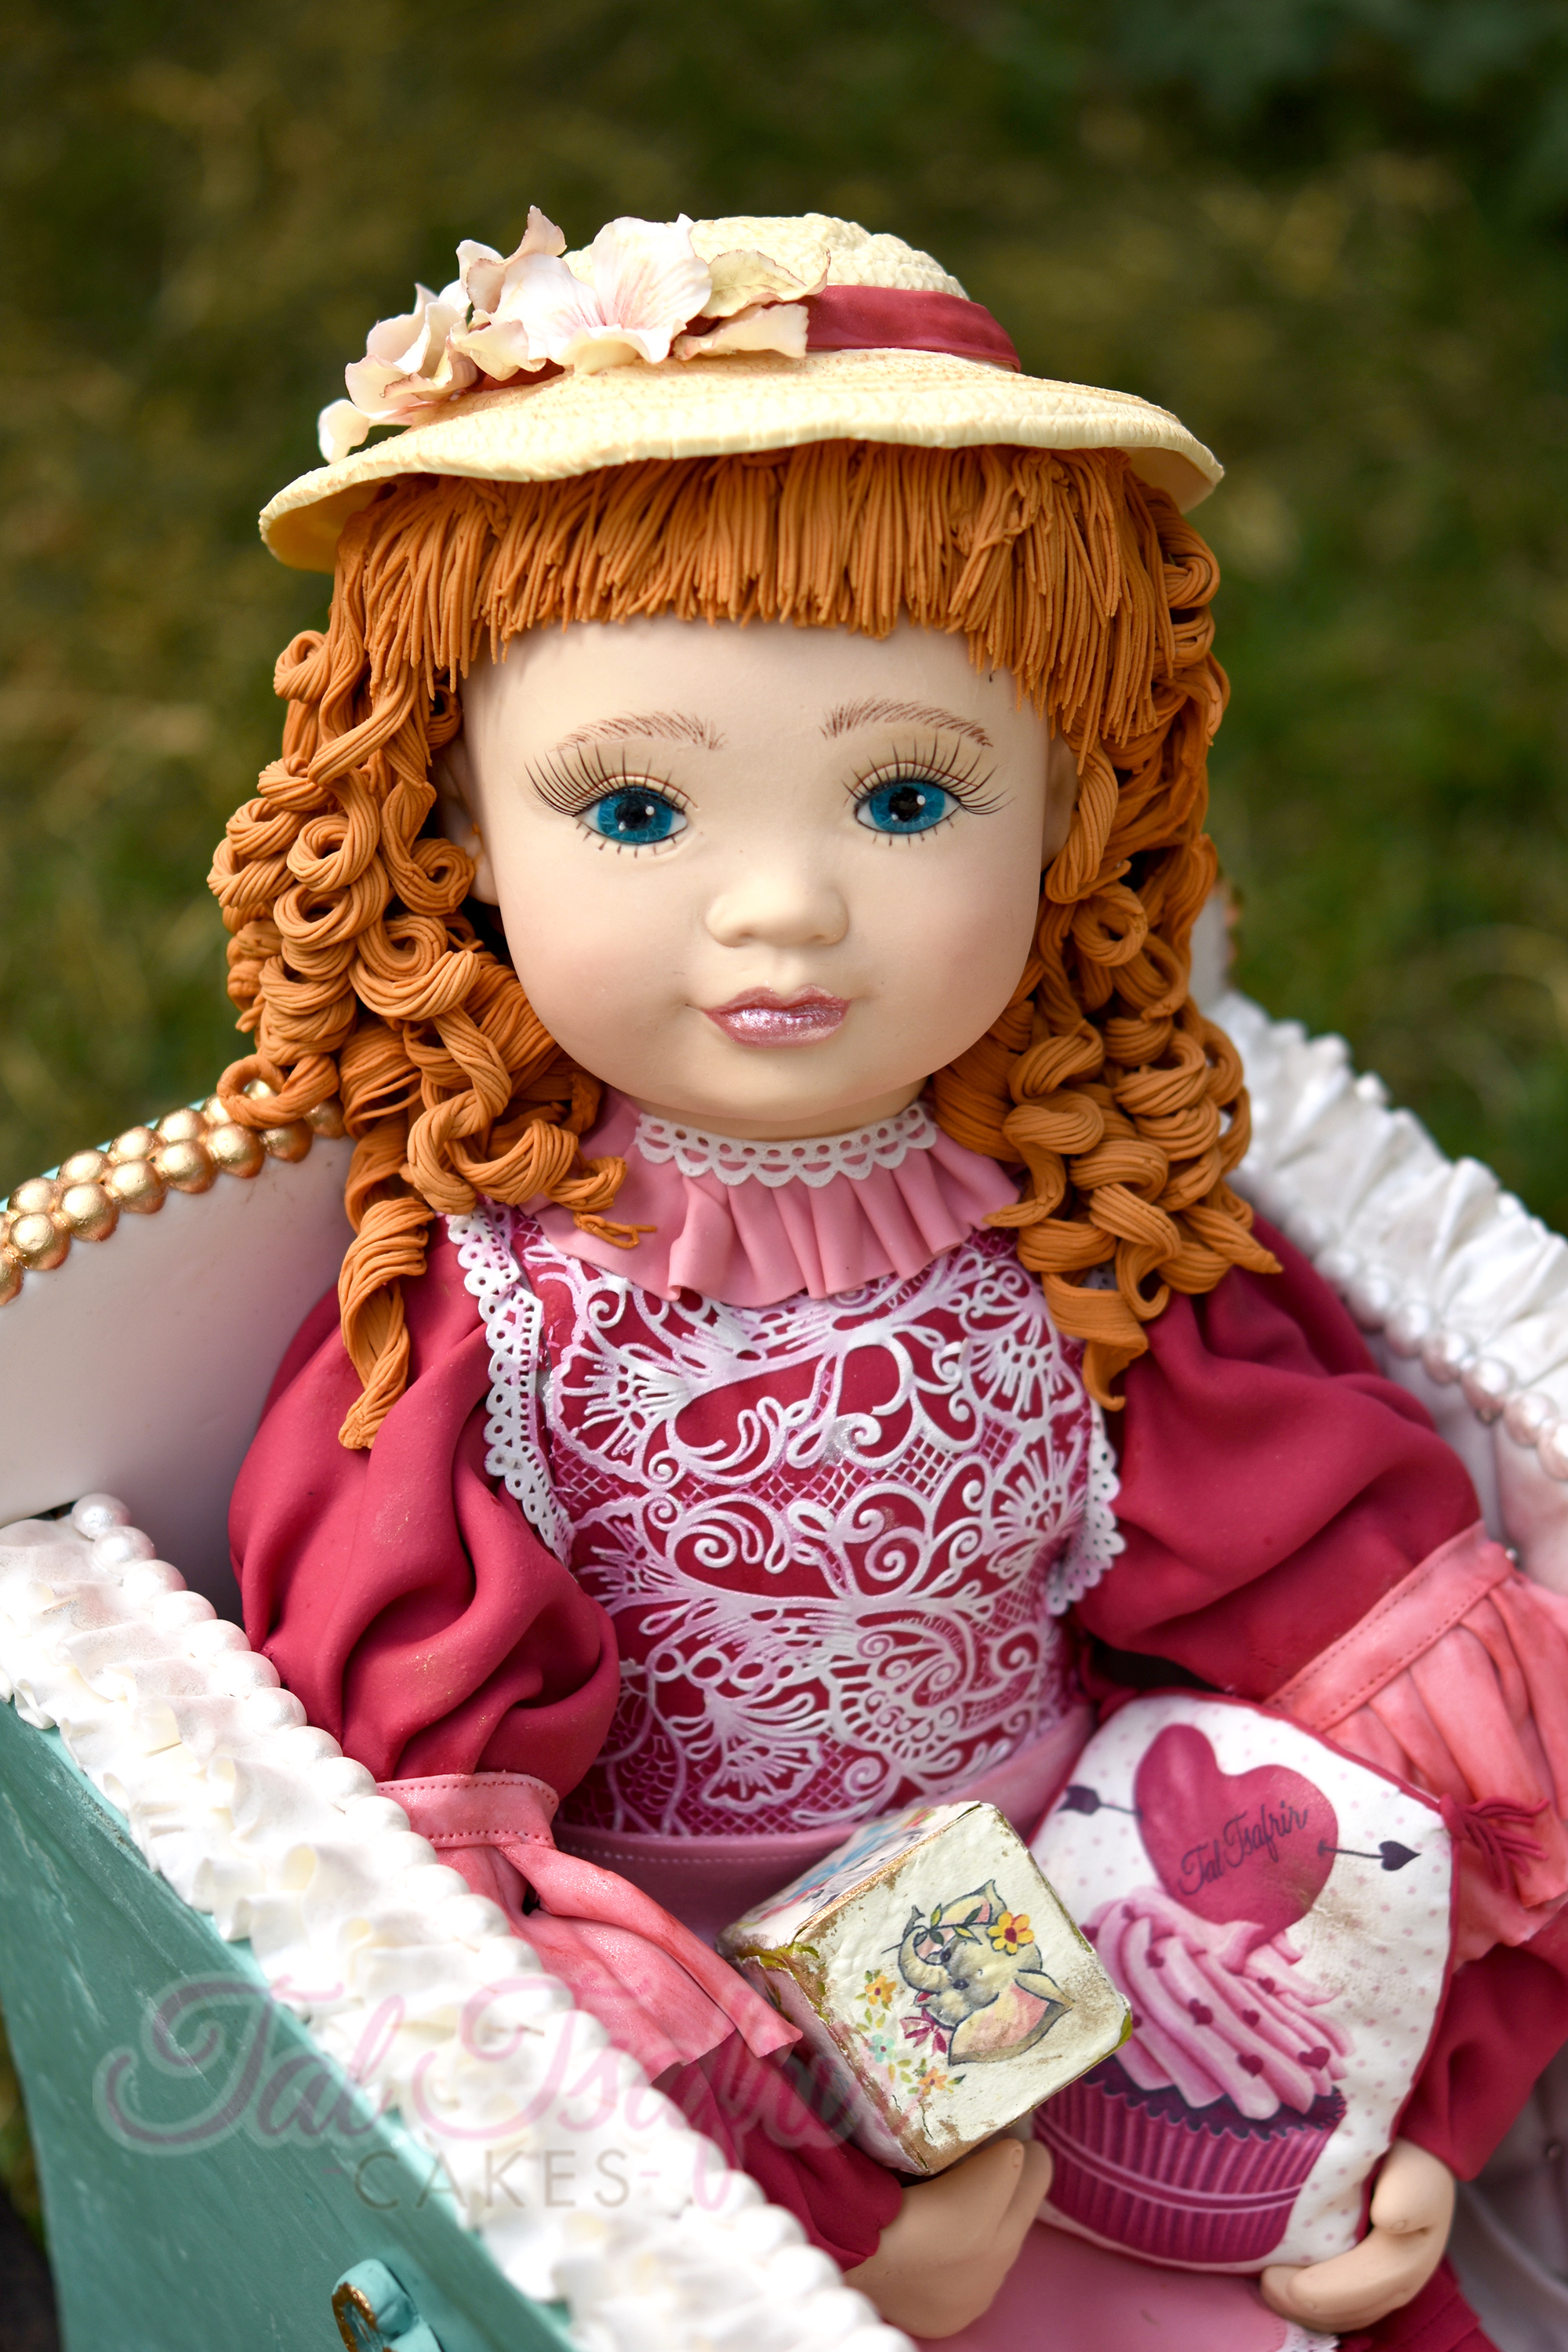 Baby Doll Figurine